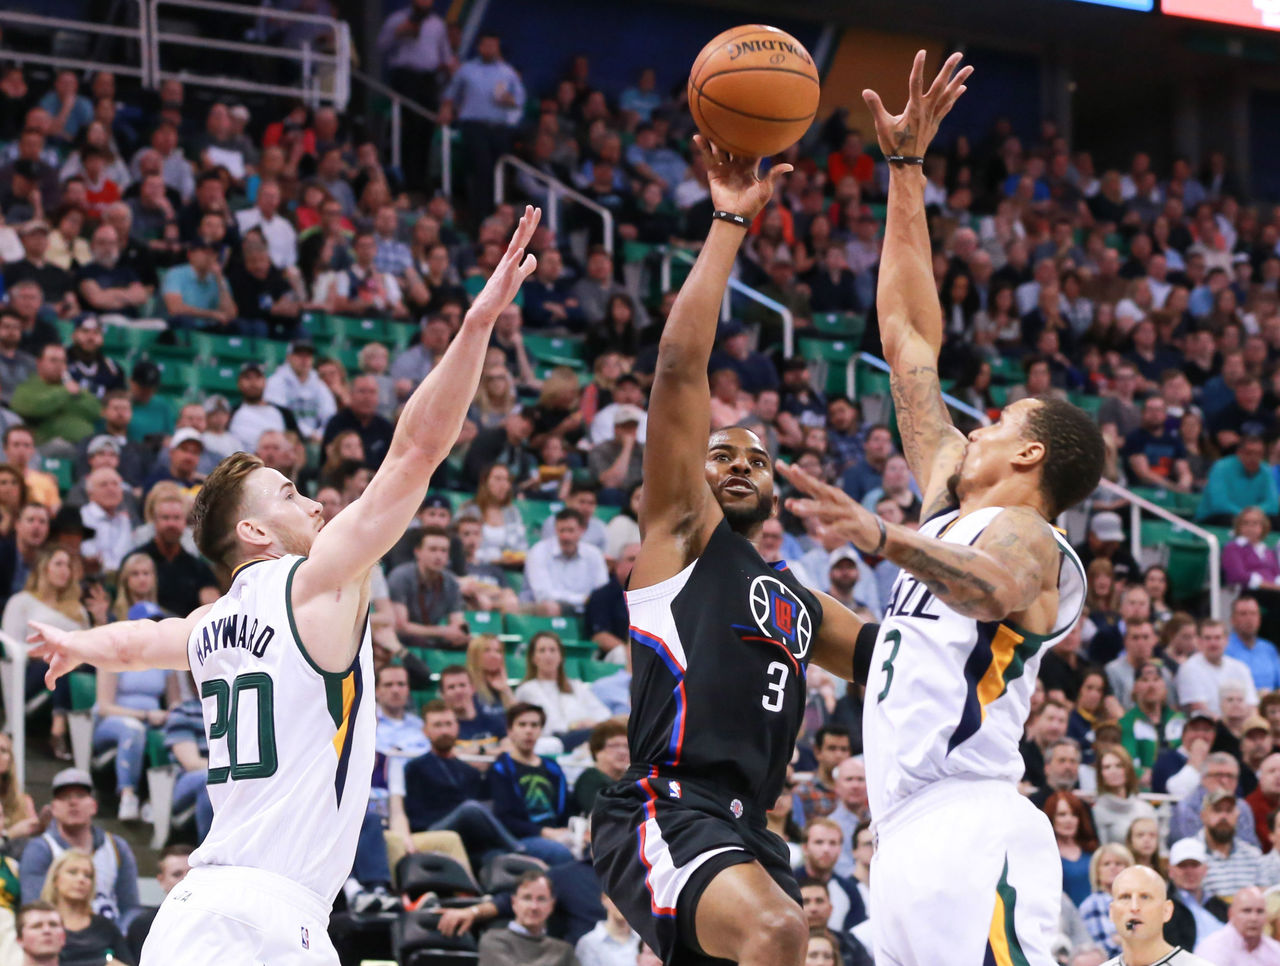 Cropped 2017 03 14t014752z 1443244781 nocid rtrmadp 3 nba los angeles clippers at utah jazz